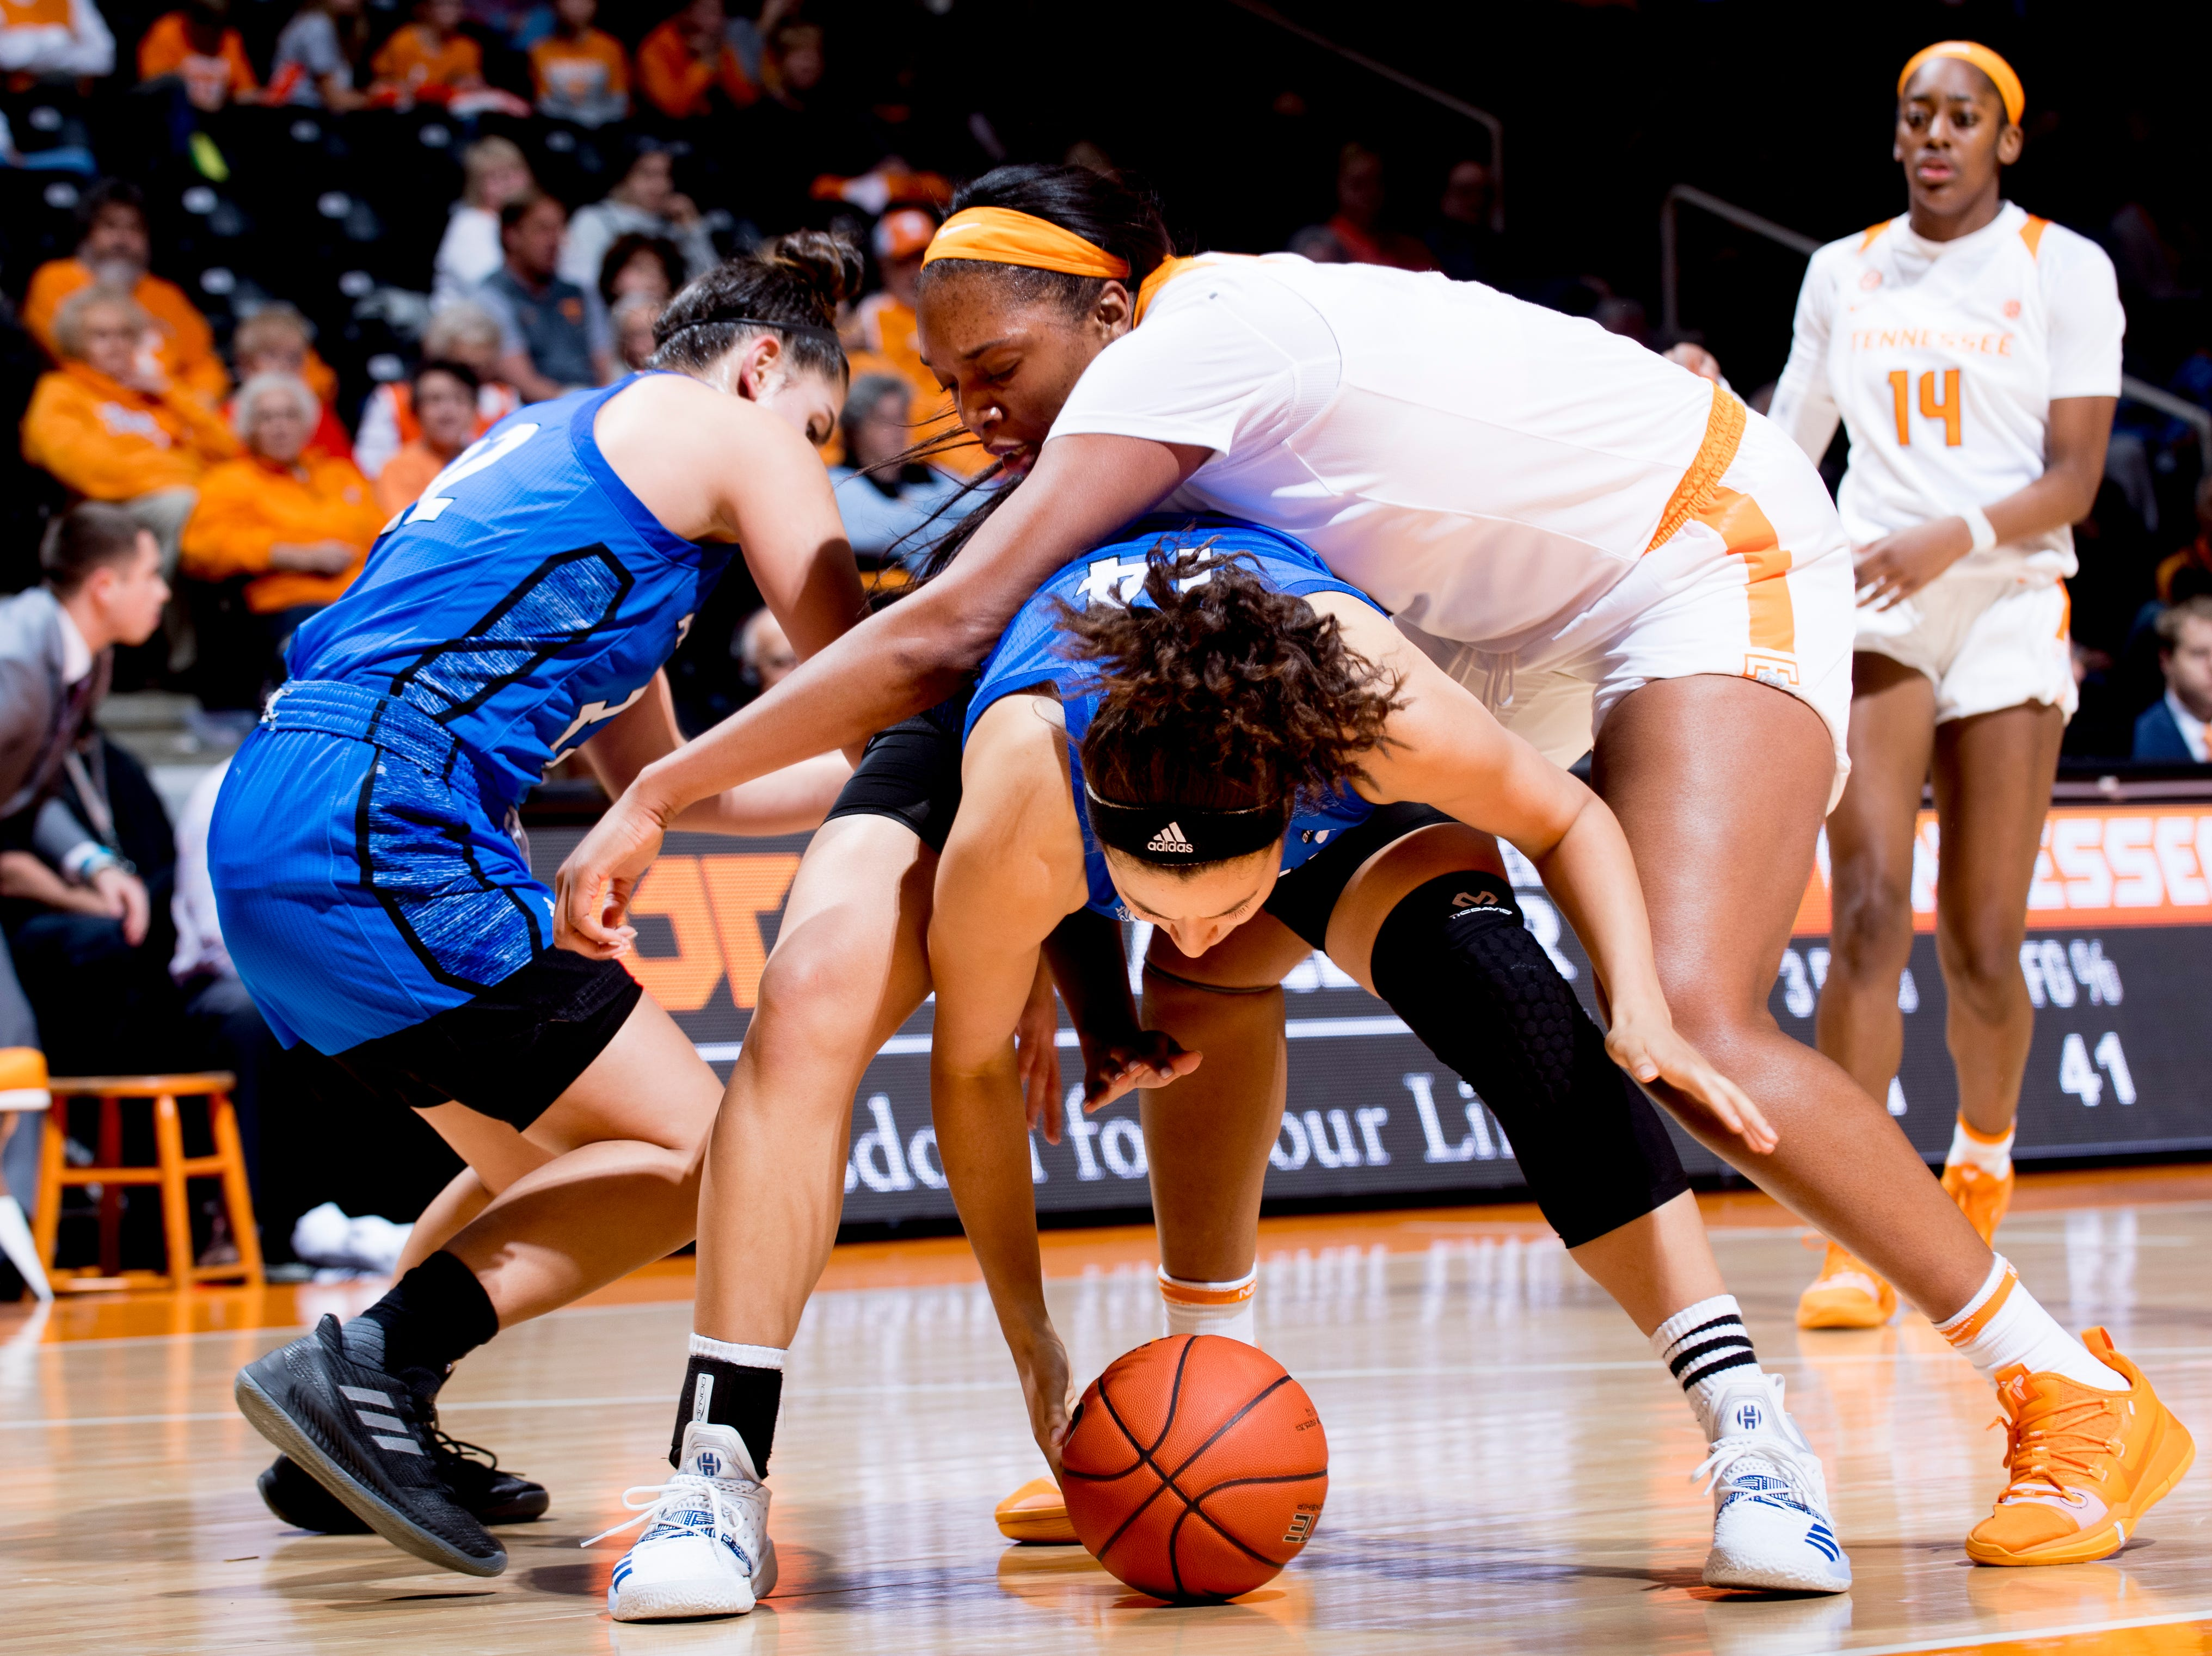 Tennessee center Kasiyahna Kushkituah (11) runs into UNC Asheville  center Brooke Jordan-Brown (14) and UNC Asheville  forward Juliet Esadah (12) during a game between Tennessee and UNC Asheville at Thompson-Boling Arena in Knoxville, Tennessee on Wednesday, November 14, 2018.